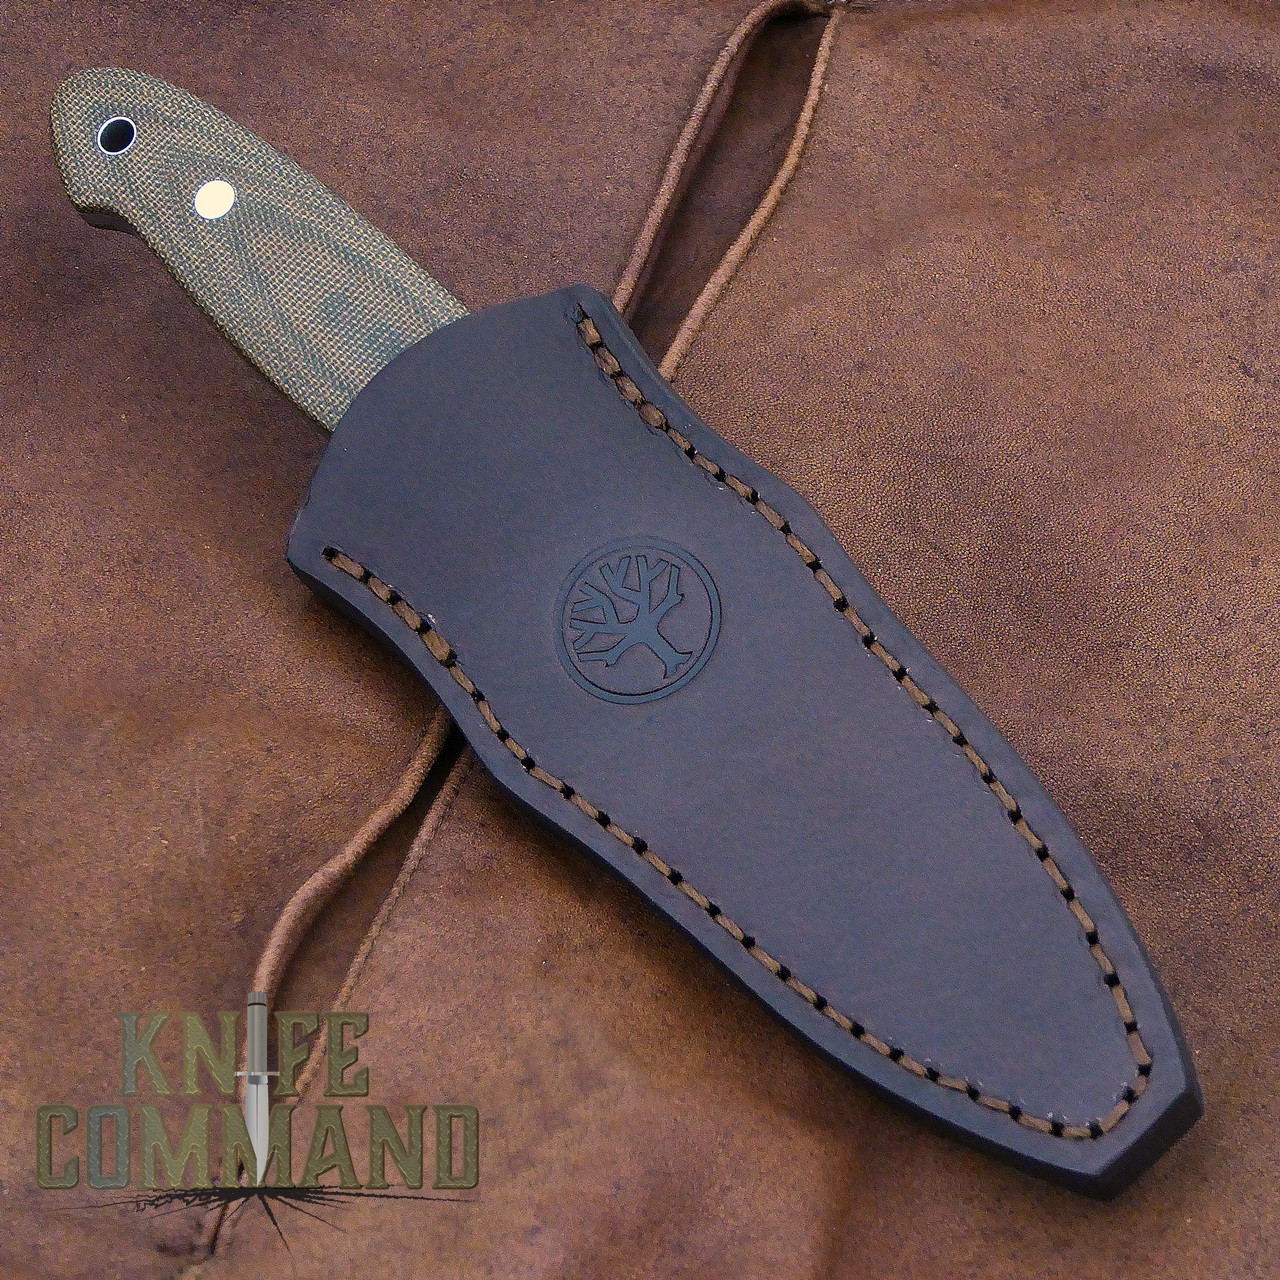 Boker Cub Lucas Burnley EDC Fixed Blade Knife 120661.  Brown leather, quiver style belt sheath.